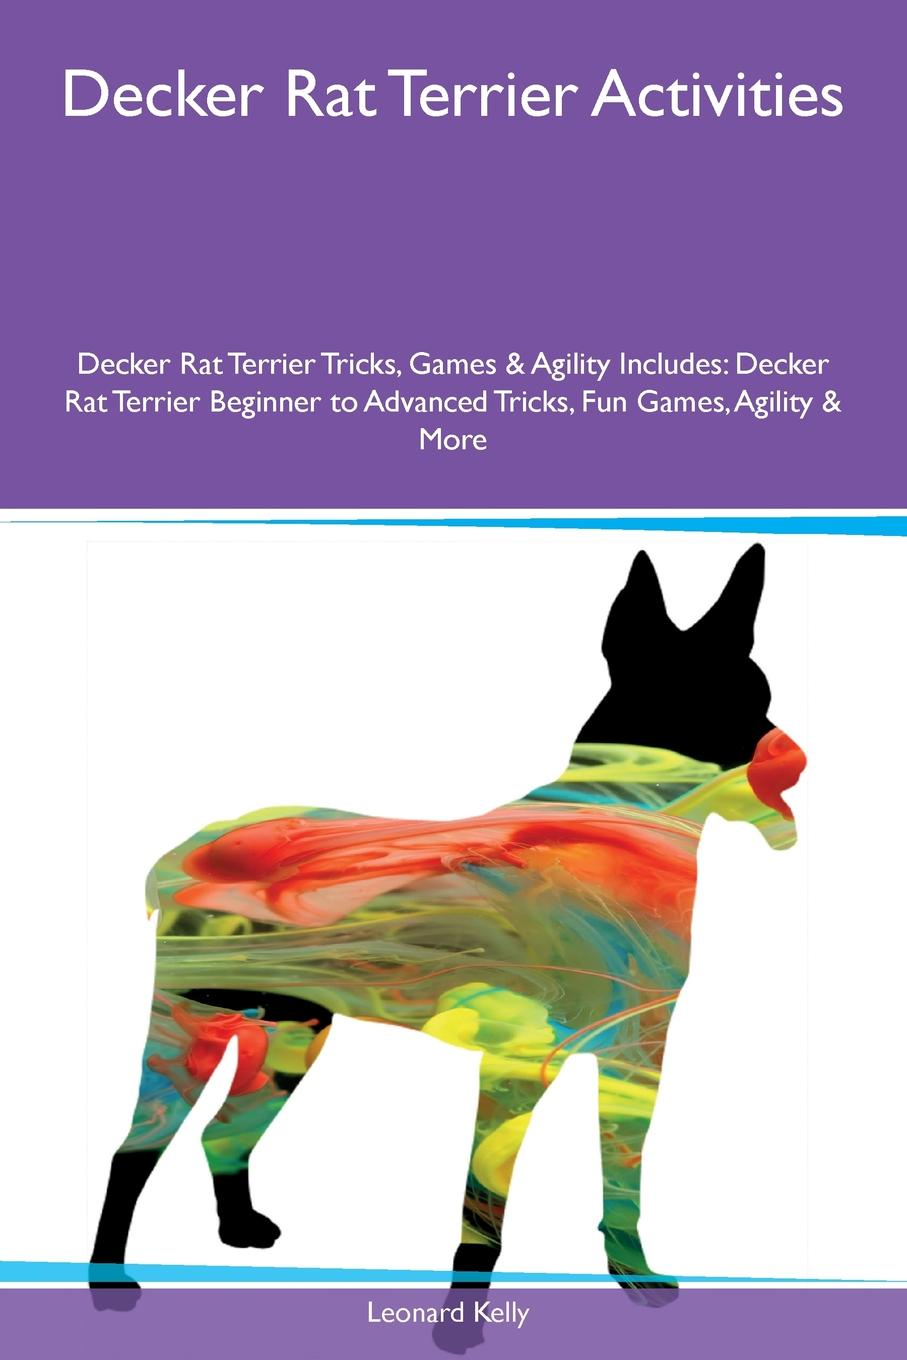 Leonard Kelly Decker Rat Terrier Activities Decker Rat Terrier Tricks, Games & Agility Includes. Decker Rat Terrier Beginner to Advanced Tricks, Fun Games, Agility & More the rat brain in stereotaxic coordinates